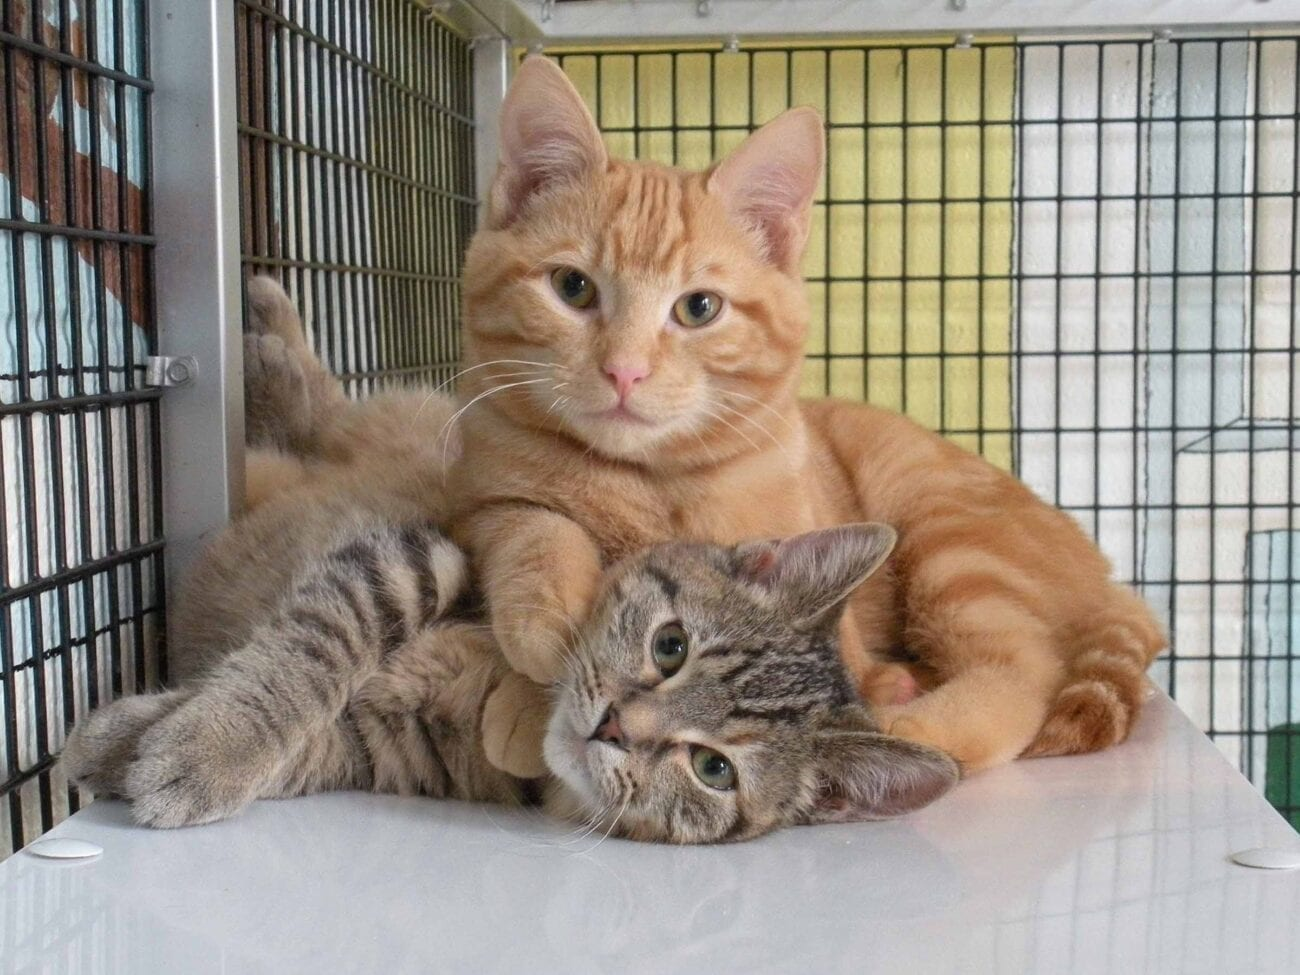 Thinking Of Quarantine Adoption All The Large Cat Breeds To Peruse Film Daily